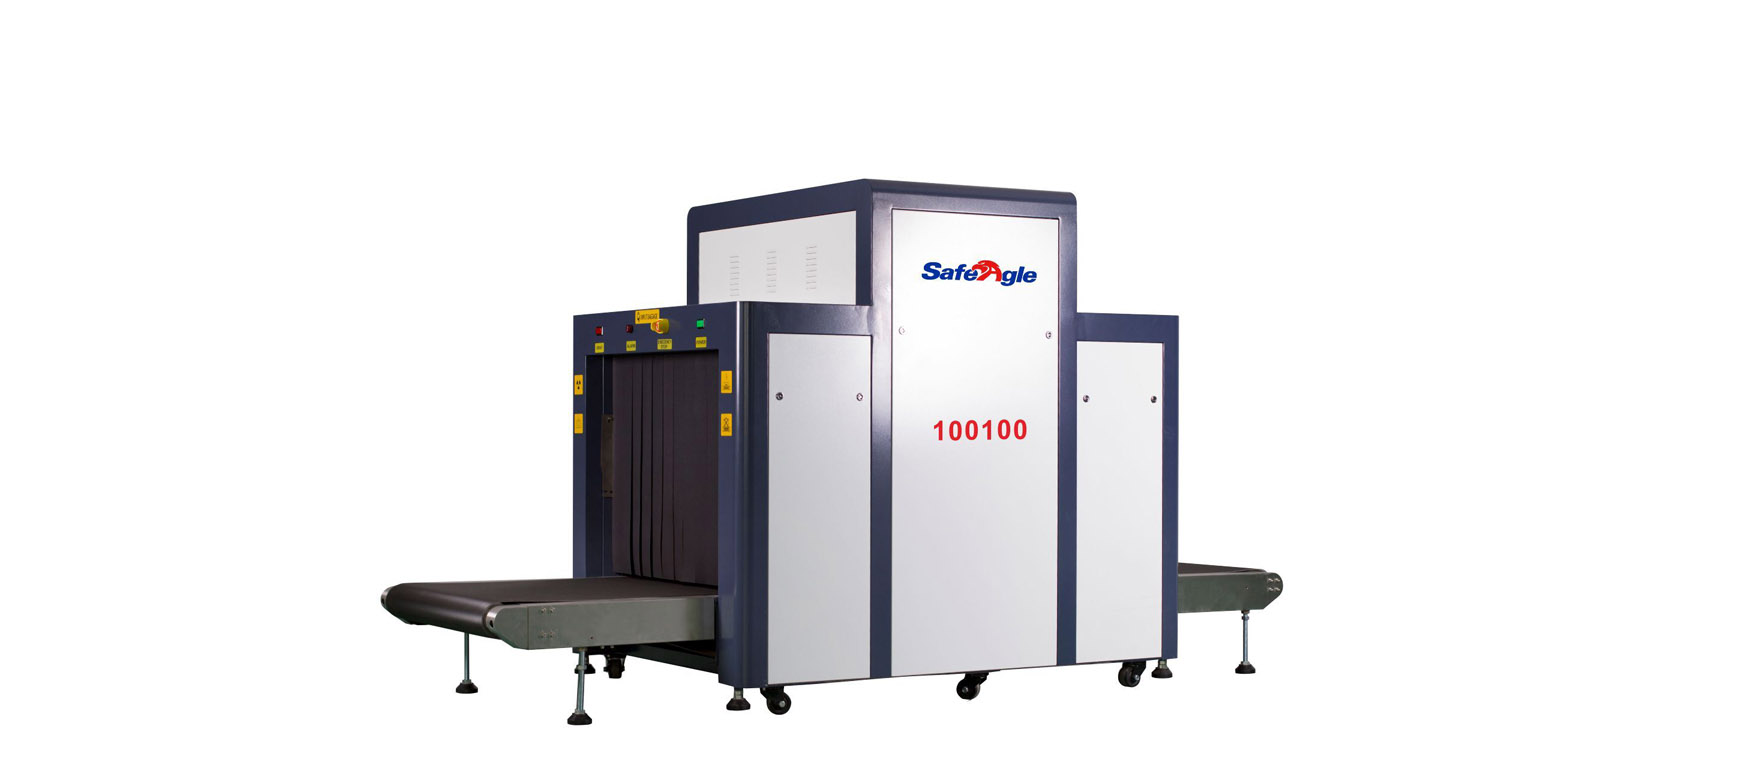 x-ray security scanning equipment